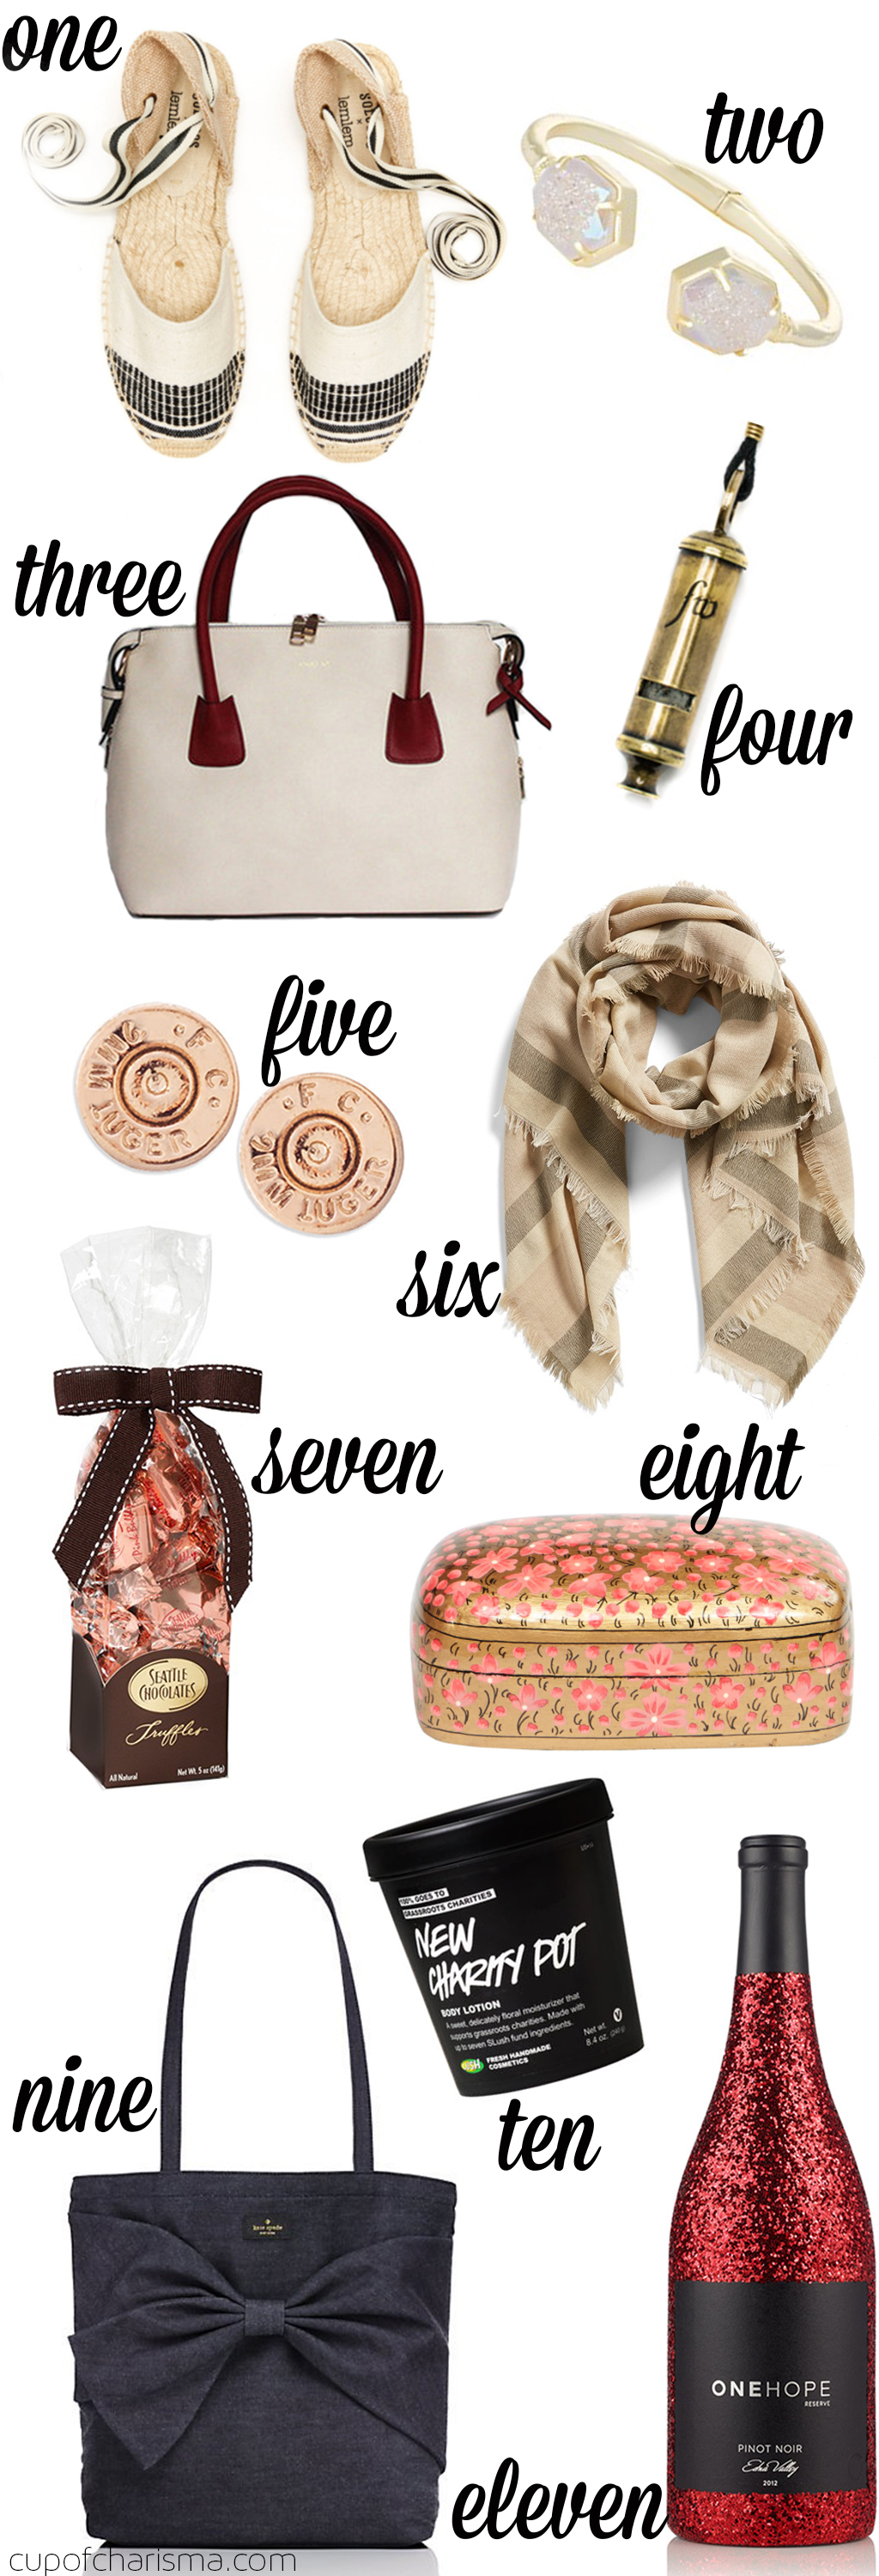 Charitable Gift Guide